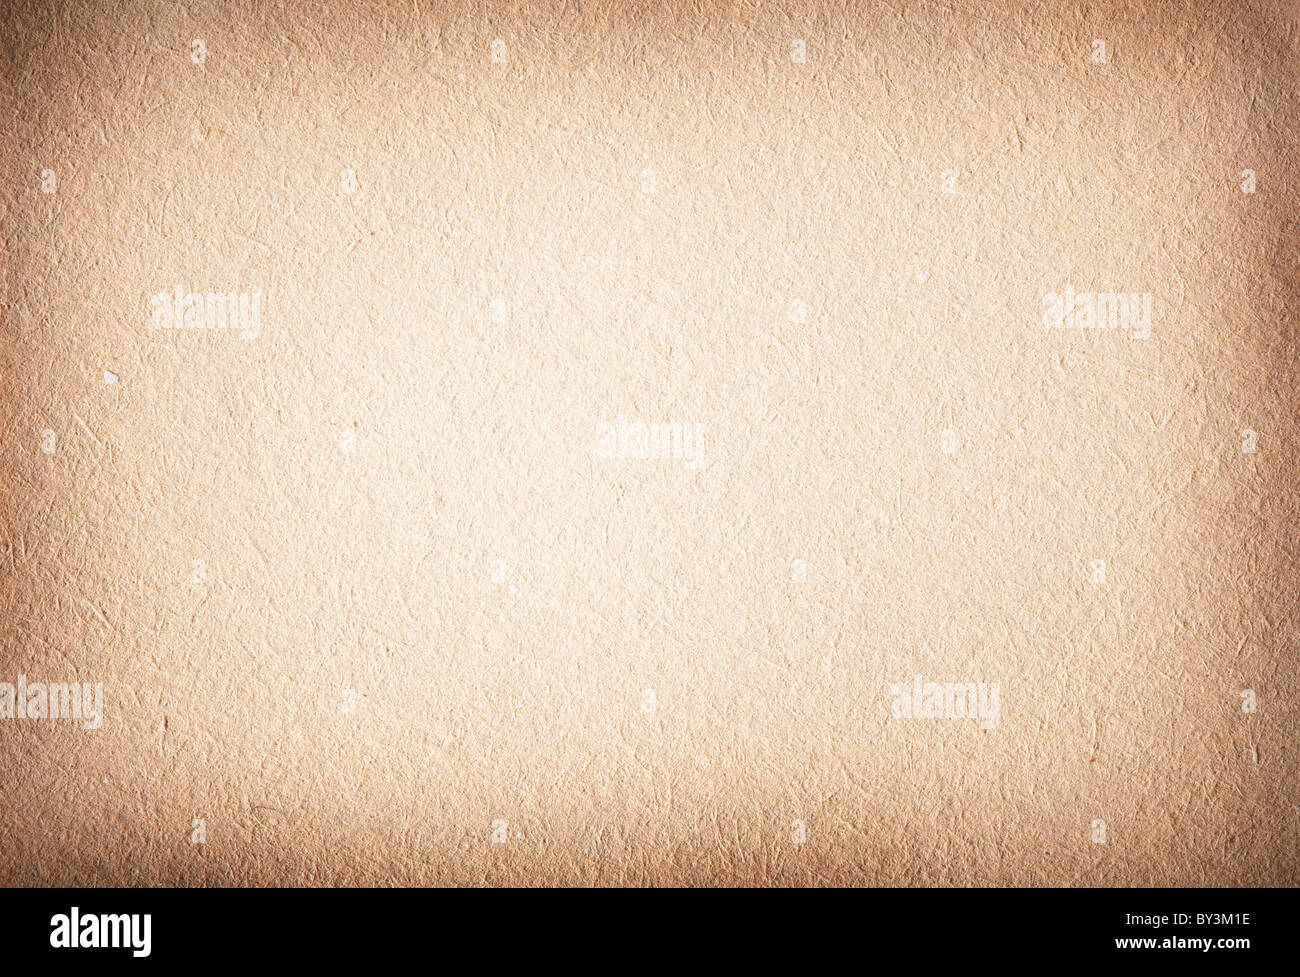 Image texture of paper. - Stock Image